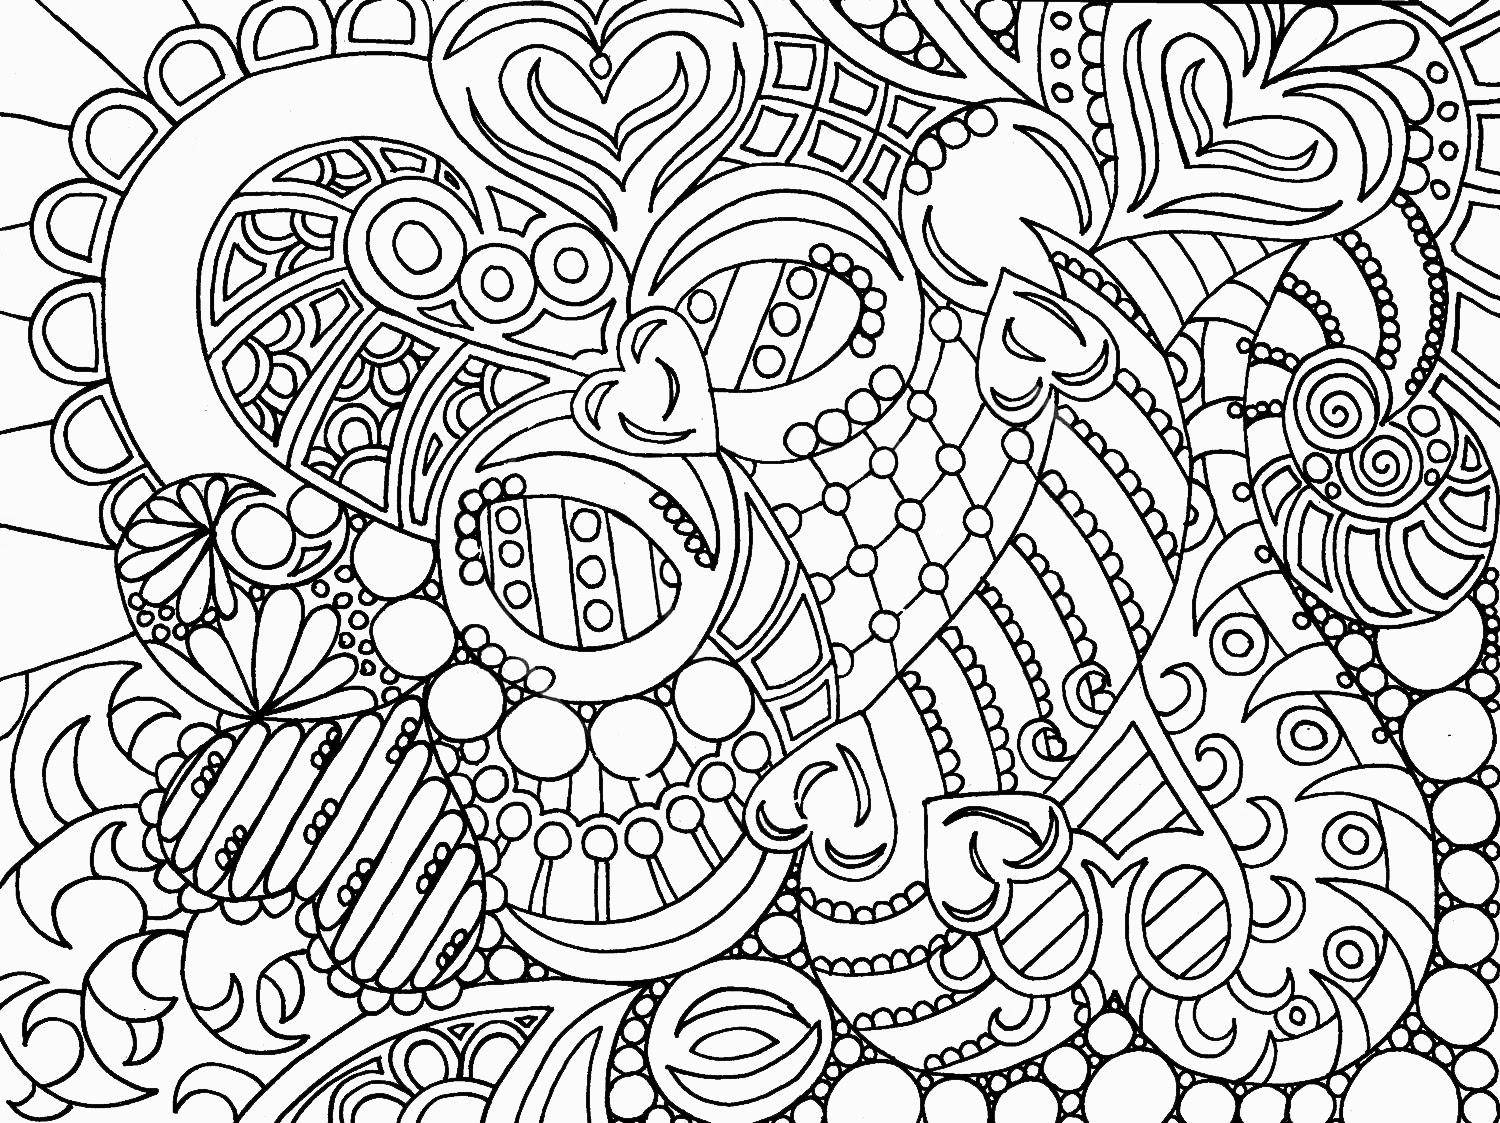 20 dessins de coloriage anti stress en ligne imprimer - Dessins anti stress ...